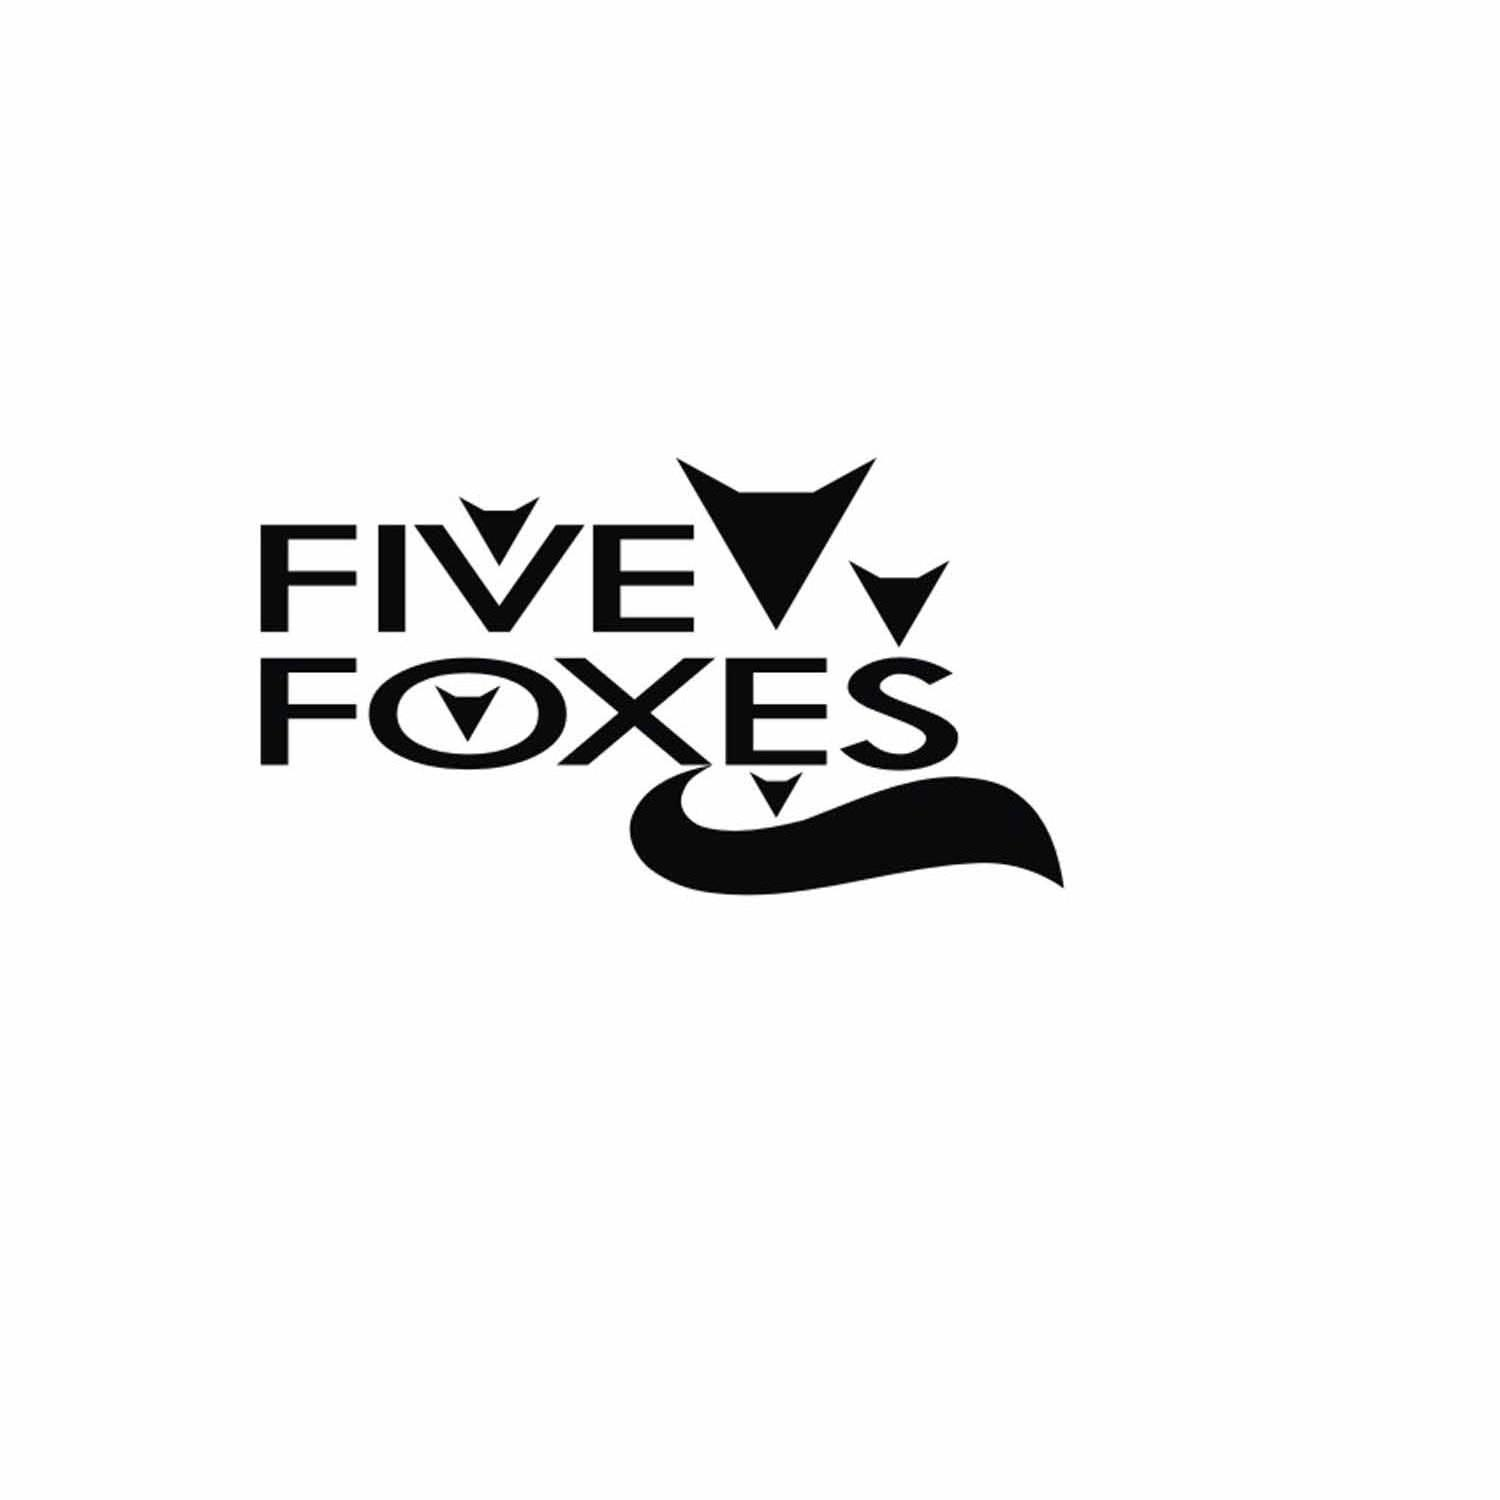 FIVE FOXES